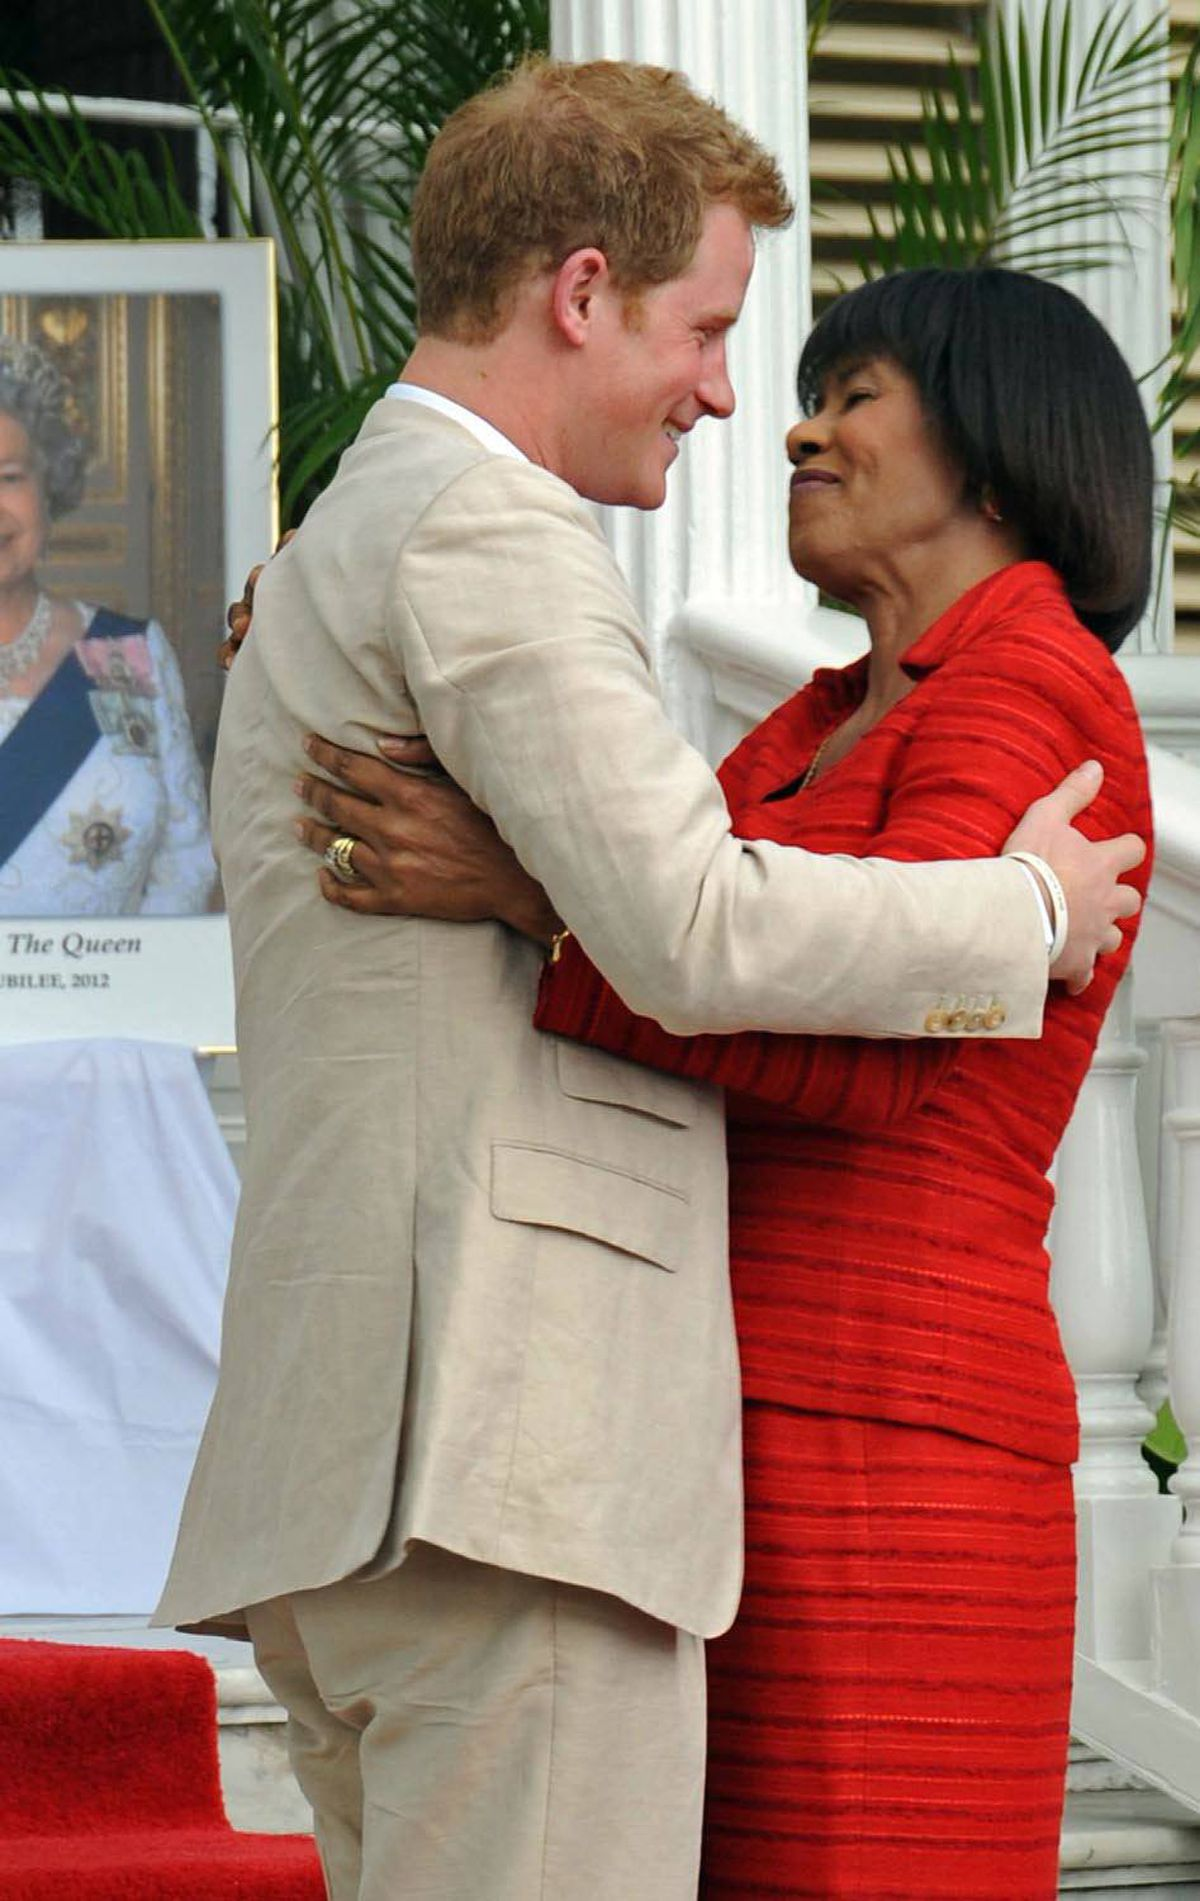 DIPLOMAT Britain's Prince Harry is welcomed by Jamaica's Prime Minister Portia Simpson Miller to a lunch in Kingston, Jamaica, Tuesday March 6, 2012.